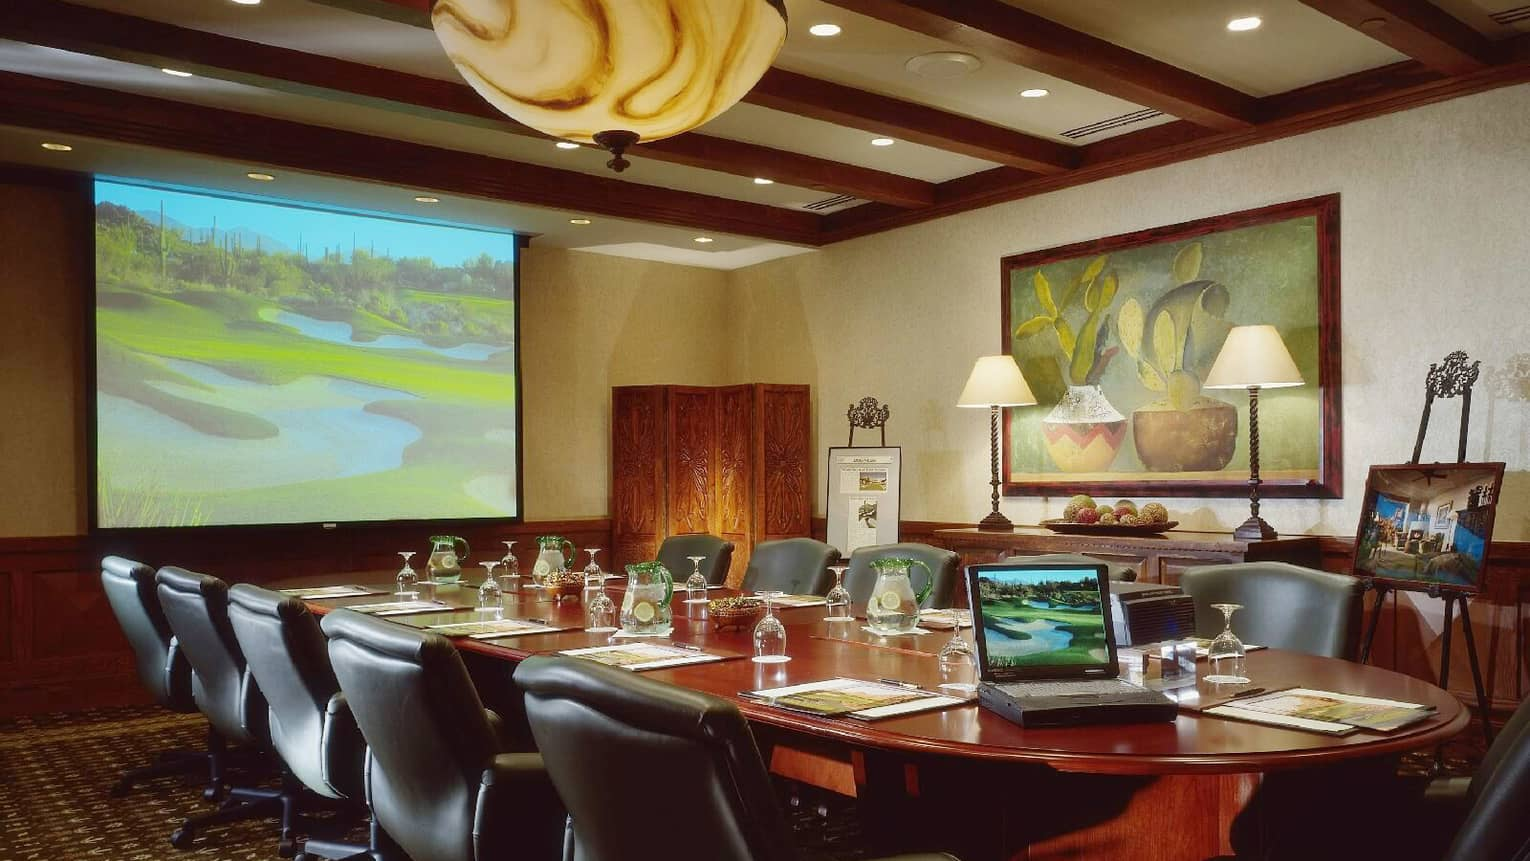 Laptop on large boardroom table facing projector screen with golf course image, under marble lamp